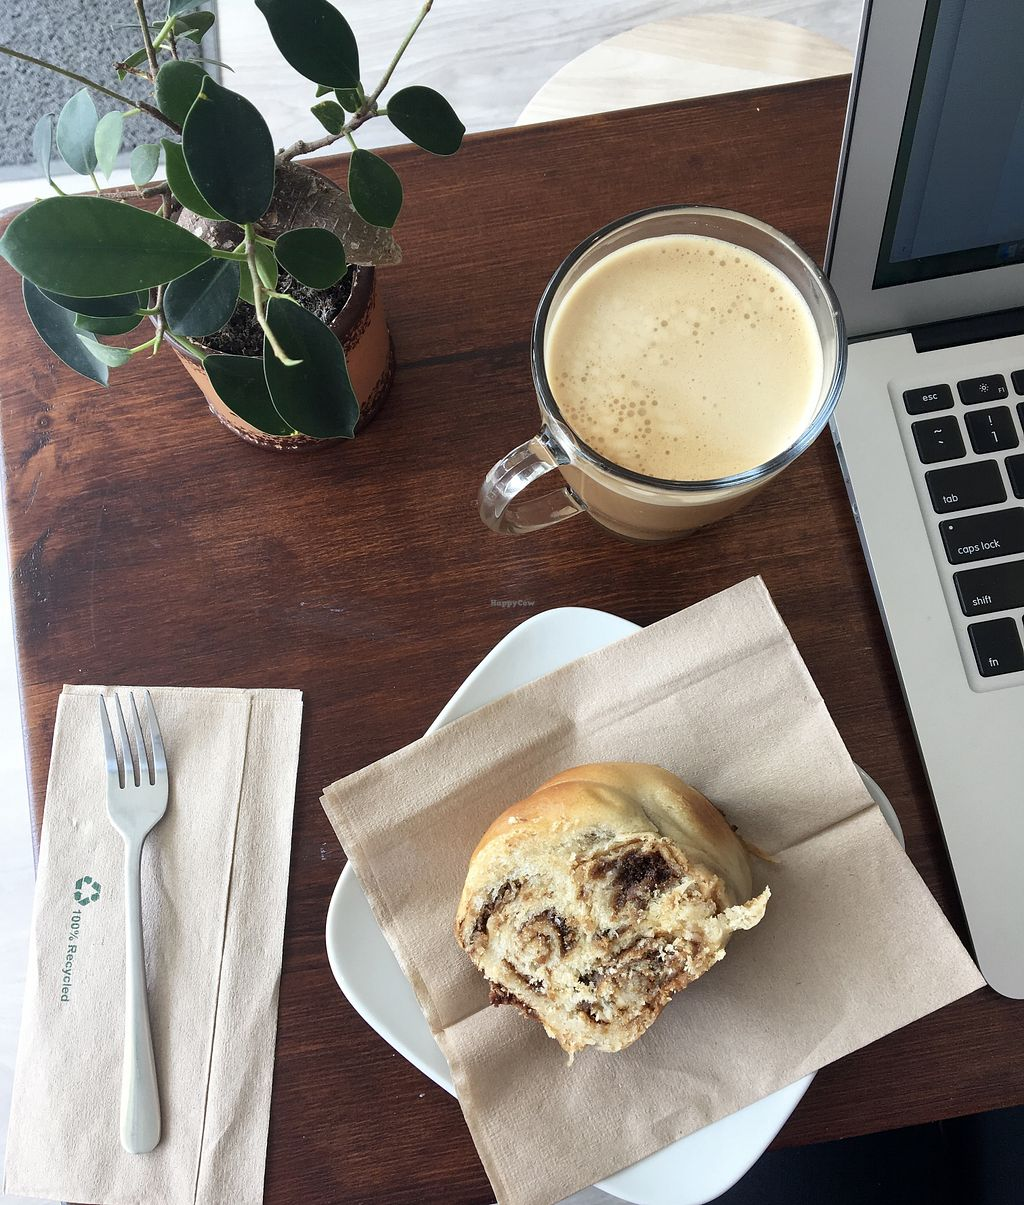 """Photo of Verde Organic Coffee & Eats  by <a href=""""/members/profile/eatyourveggies"""">eatyourveggies</a> <br/>Decaf latte and tahini pie <br/> April 23, 2018  - <a href='/contact/abuse/image/112630/389877'>Report</a>"""